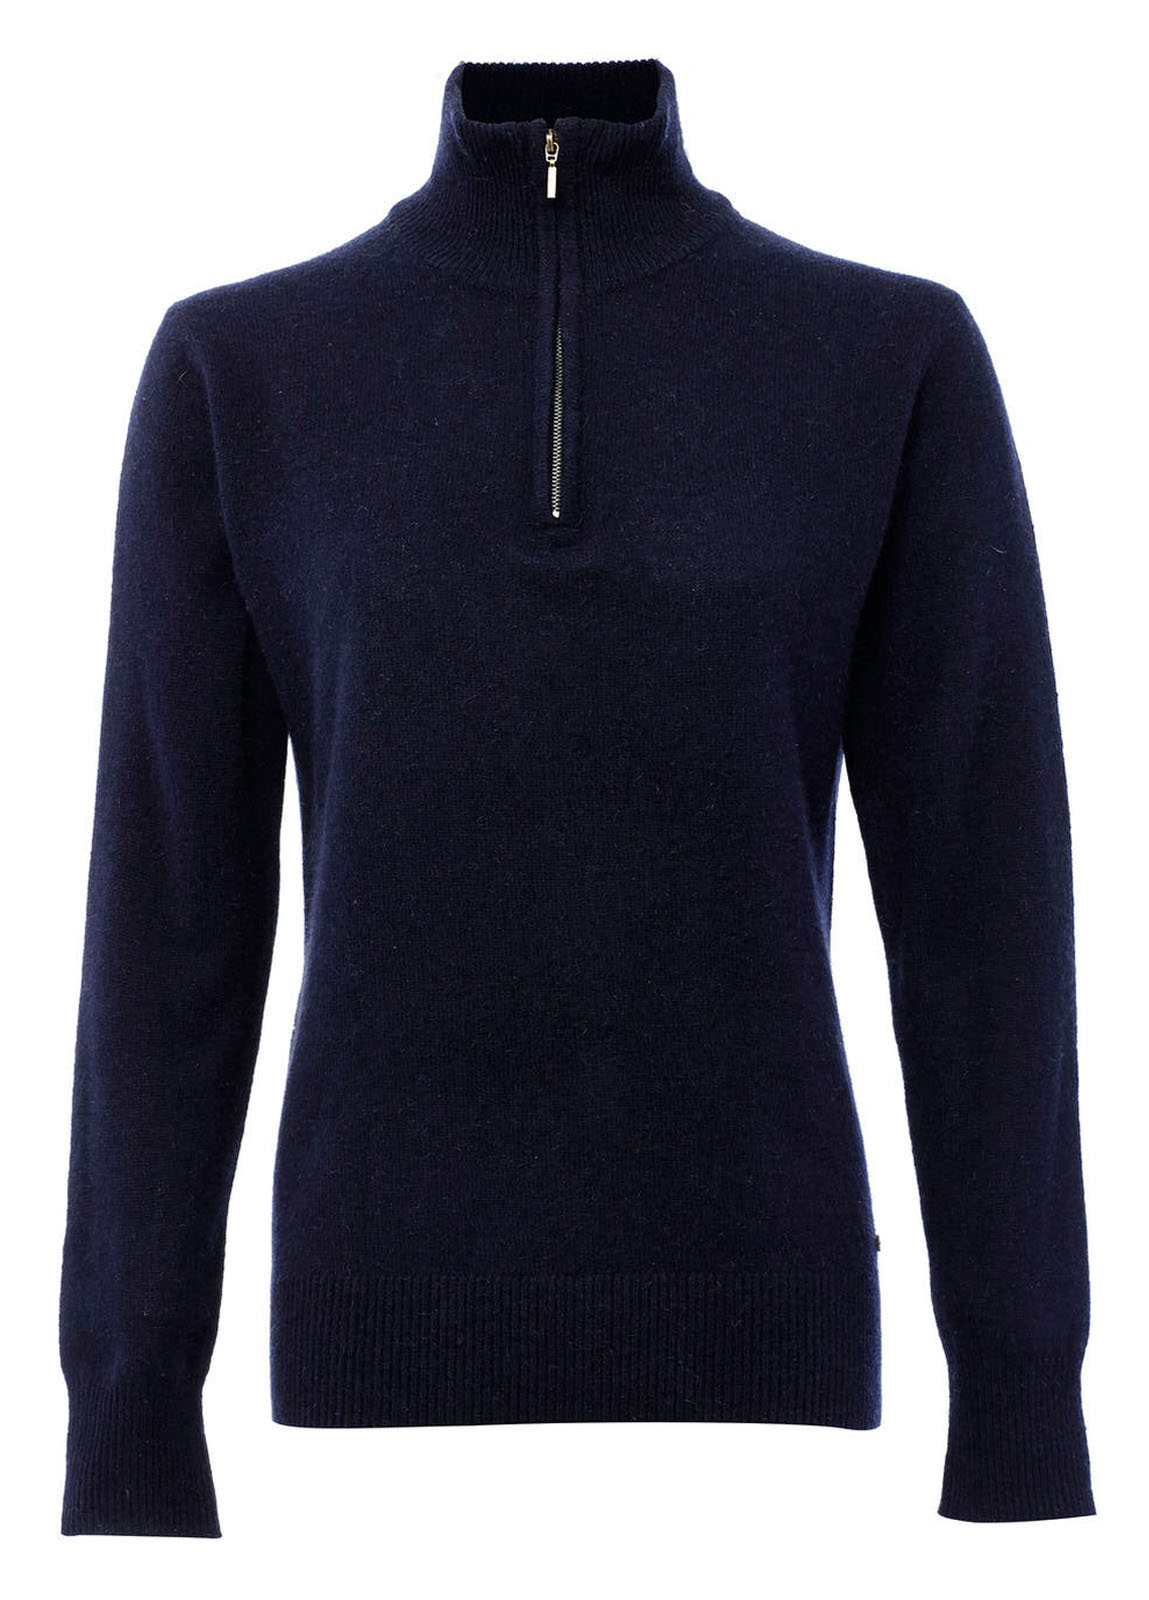 Coleraine_Sweater_Navy_Image_1